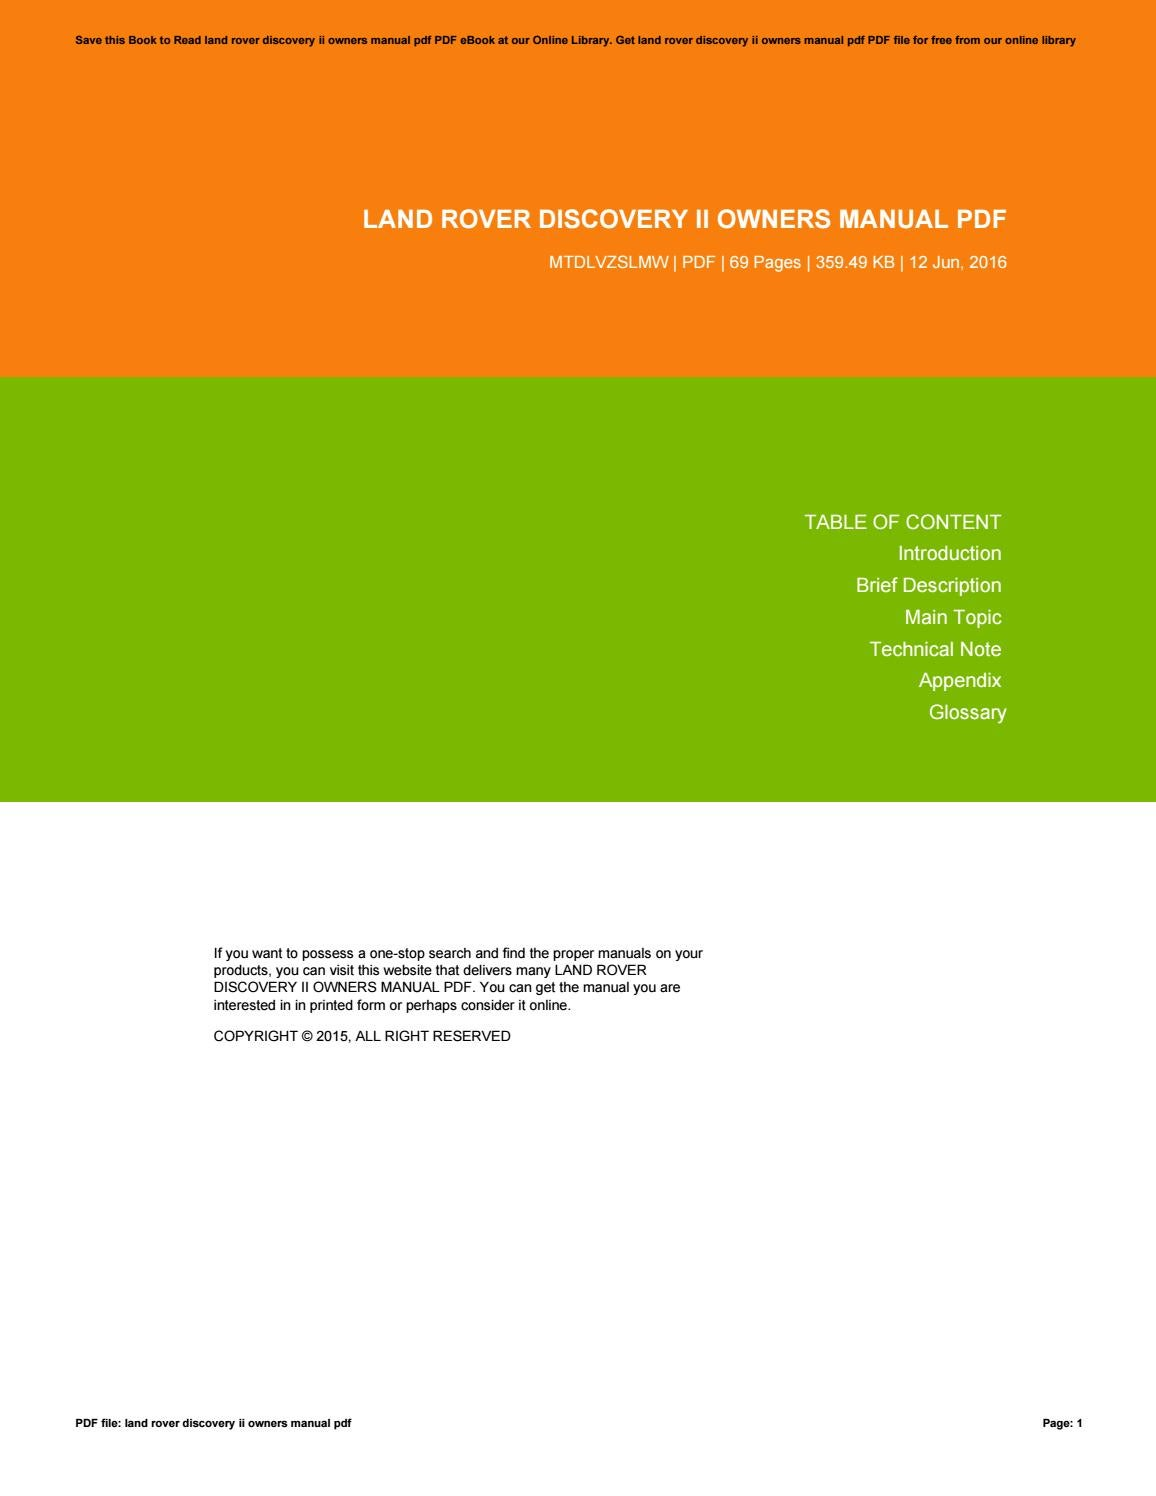 land rover discovery 2 manual online